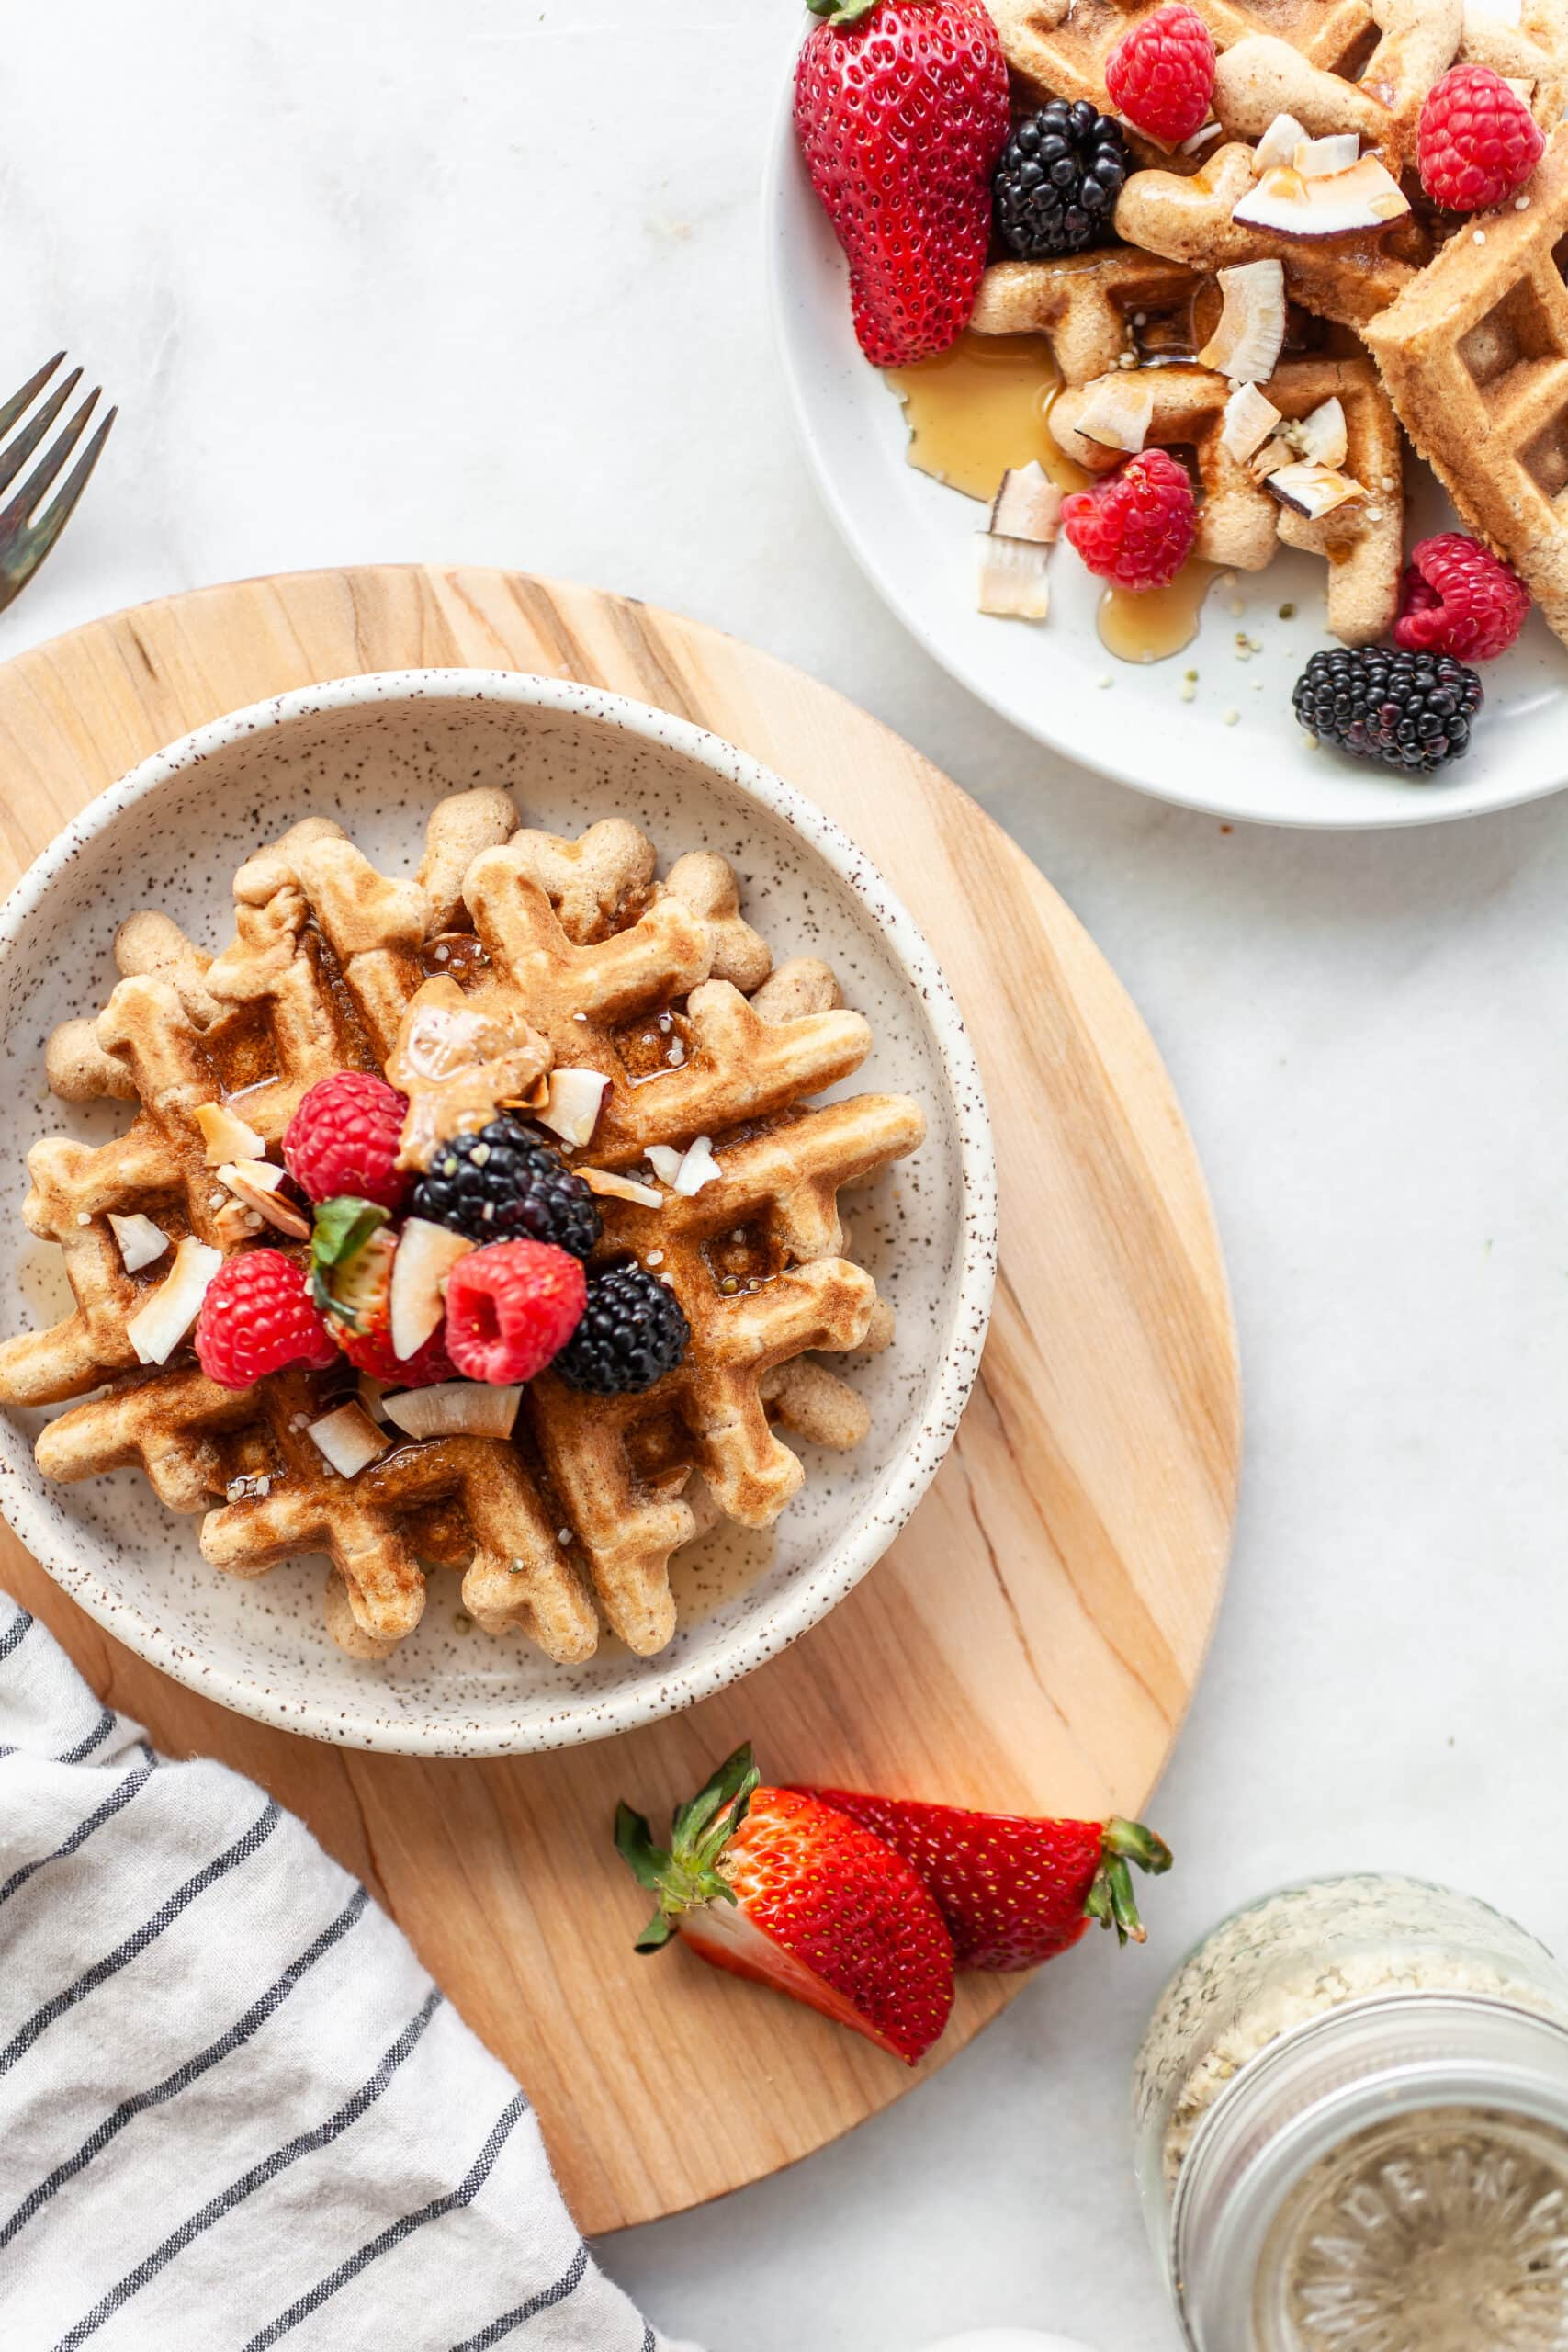 two plate with Easy Coconut Flour Waffles on a wooden round board with maple syrup on the side